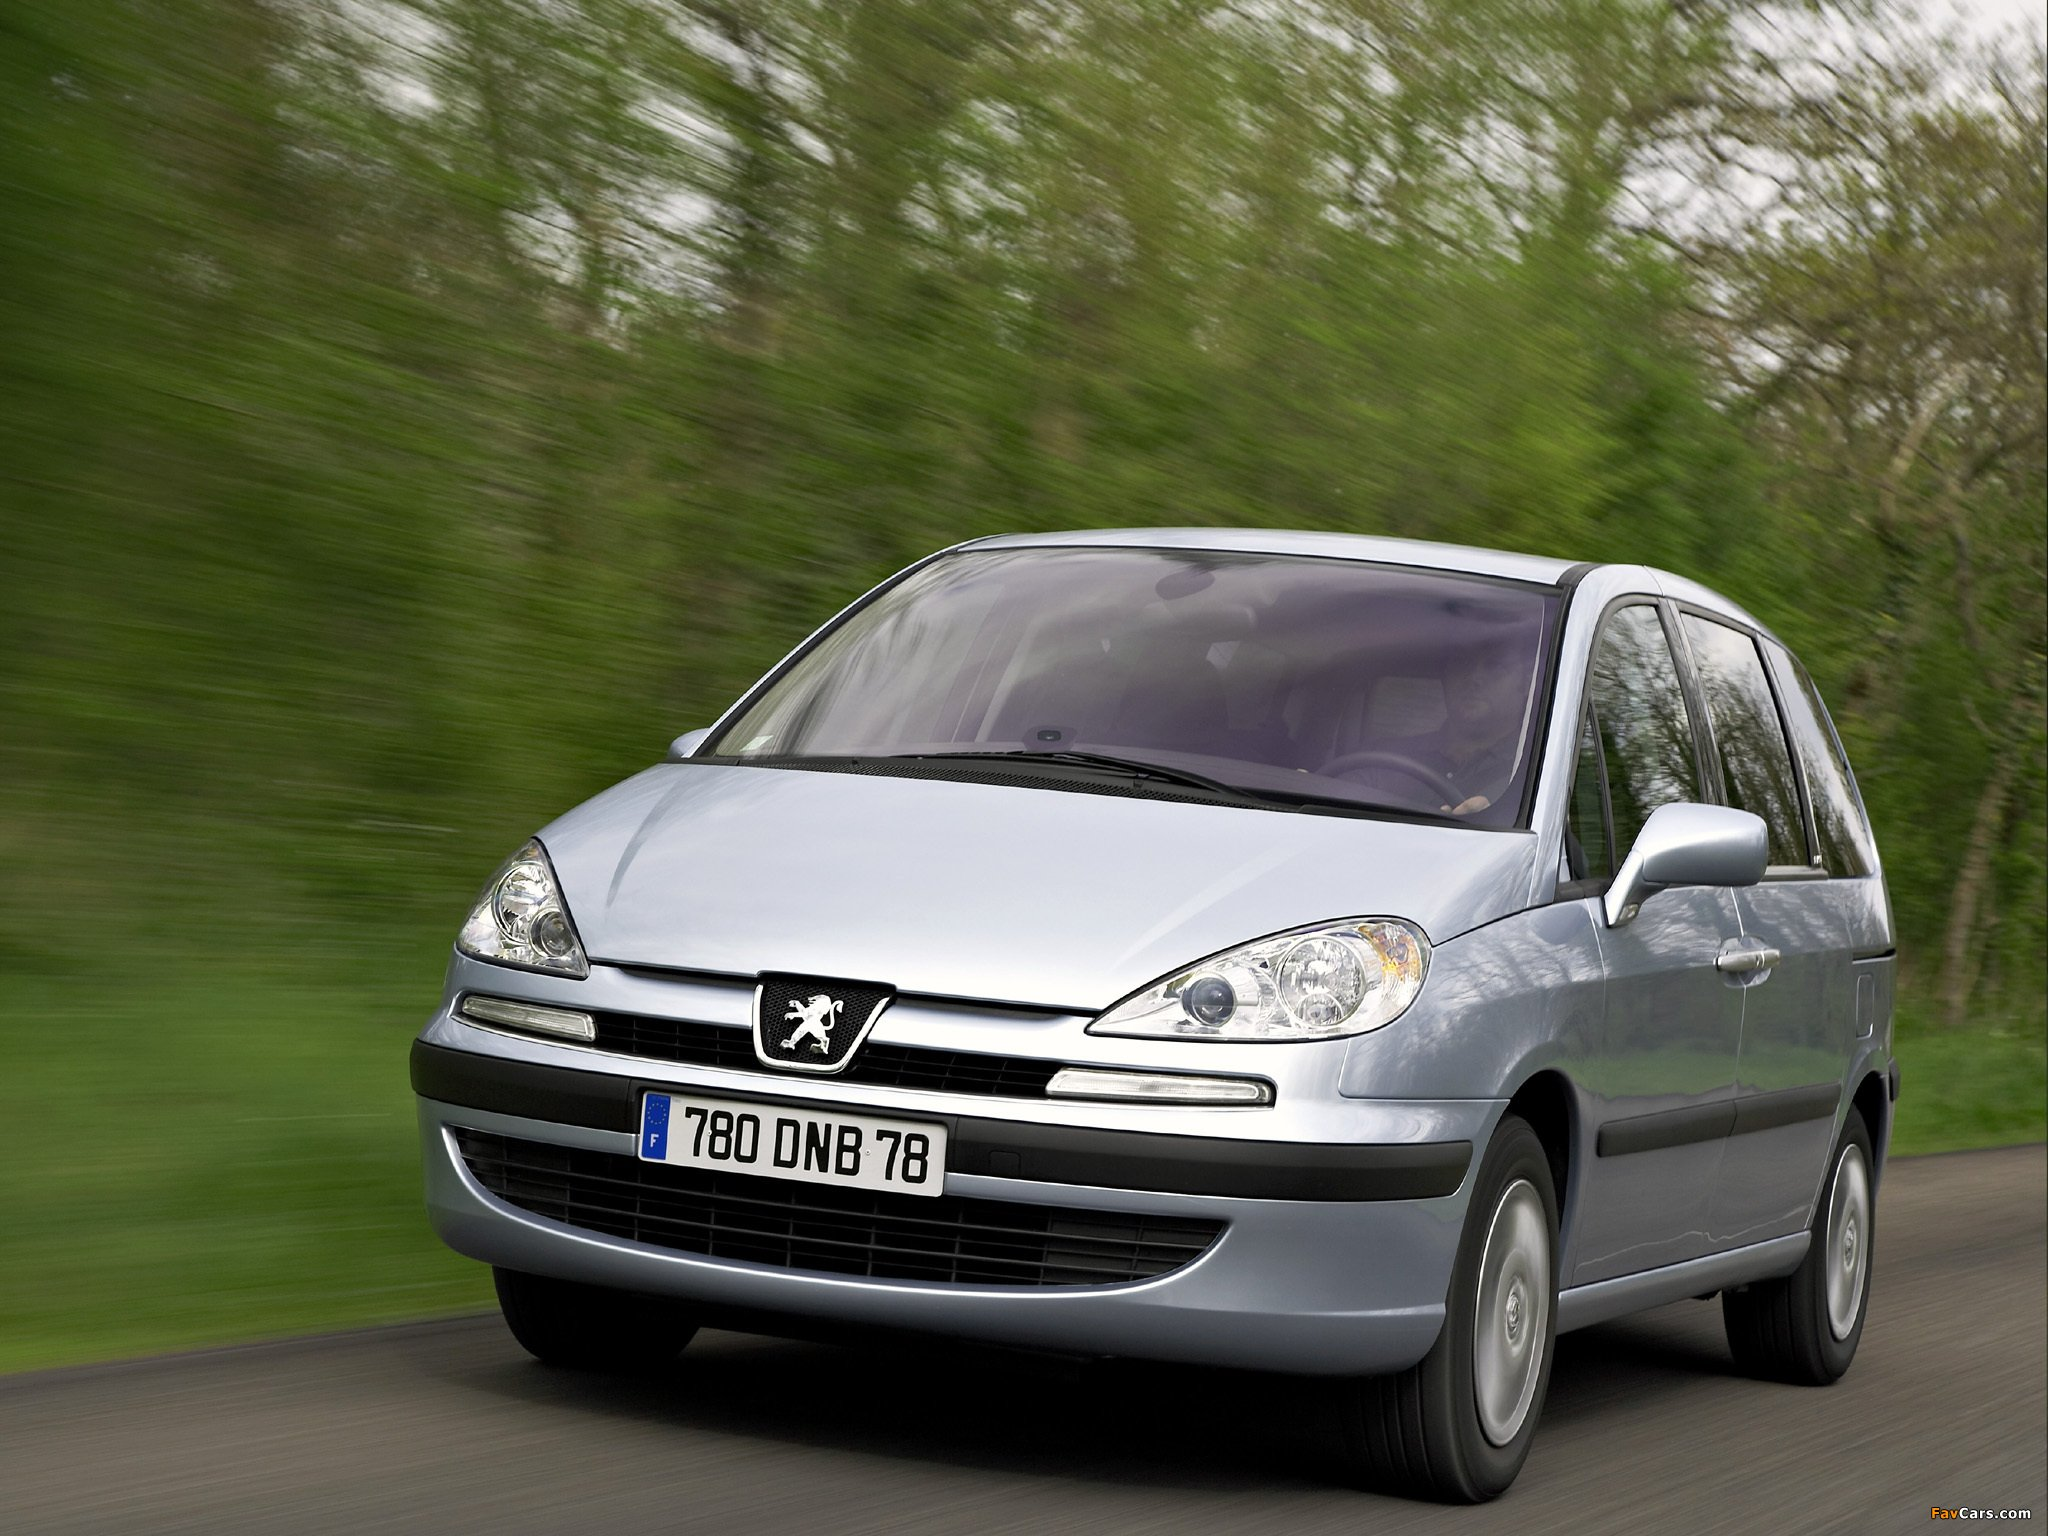 2002 peugeot 807 pictures information and specs auto. Black Bedroom Furniture Sets. Home Design Ideas